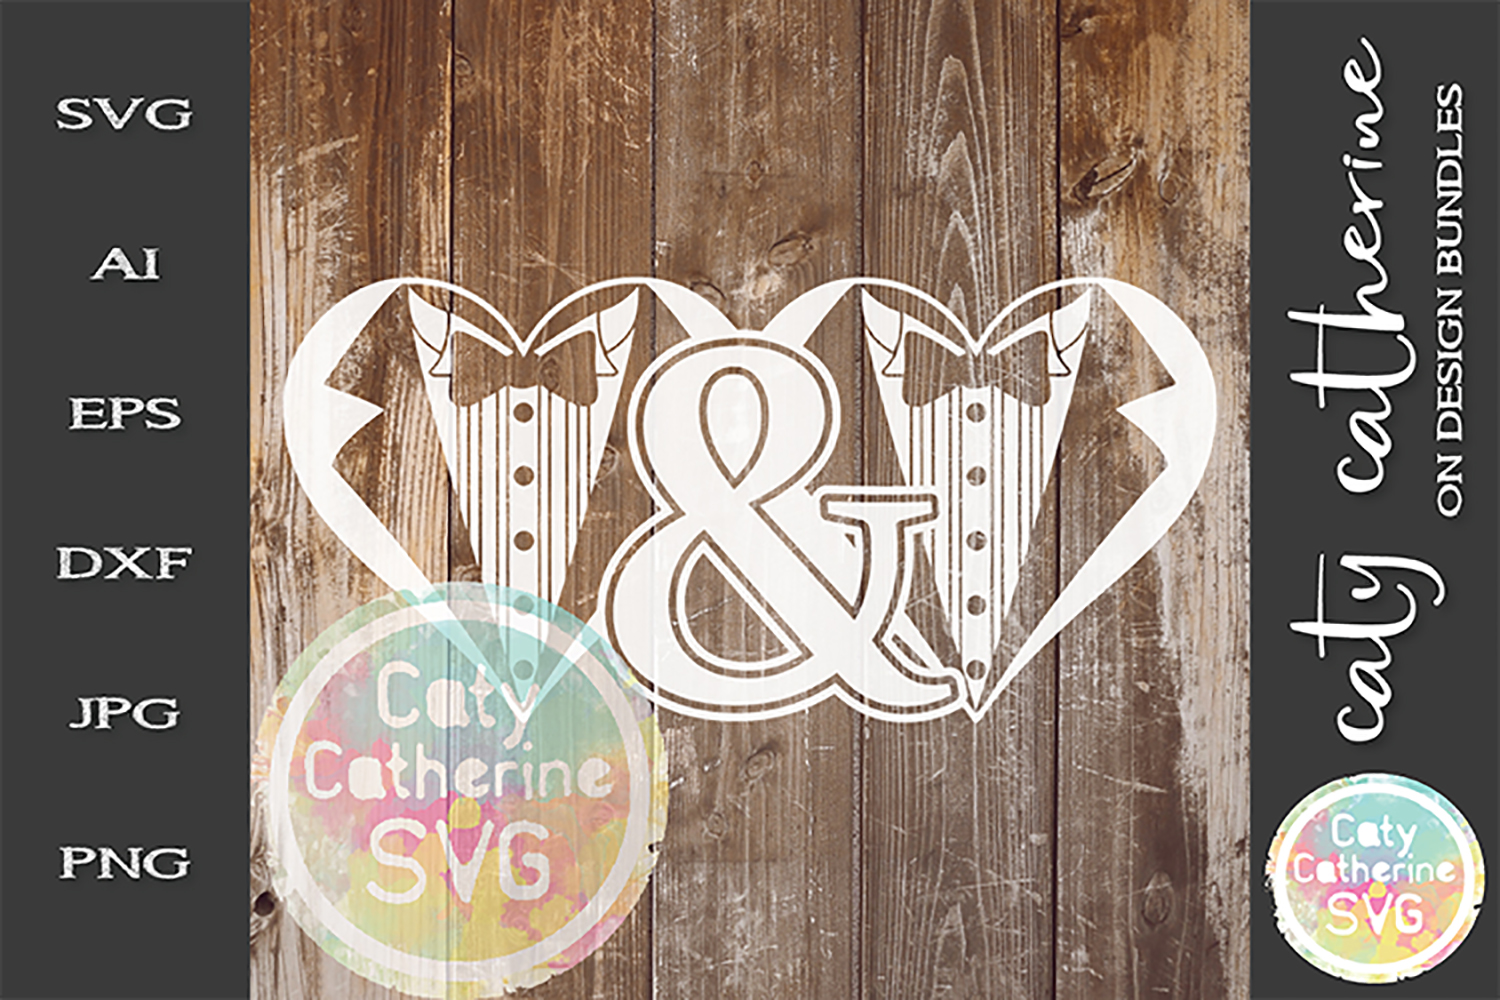 Mr & Mr Groom & Groom Tuxedo Heart Wedding SVG Cut File example image 1